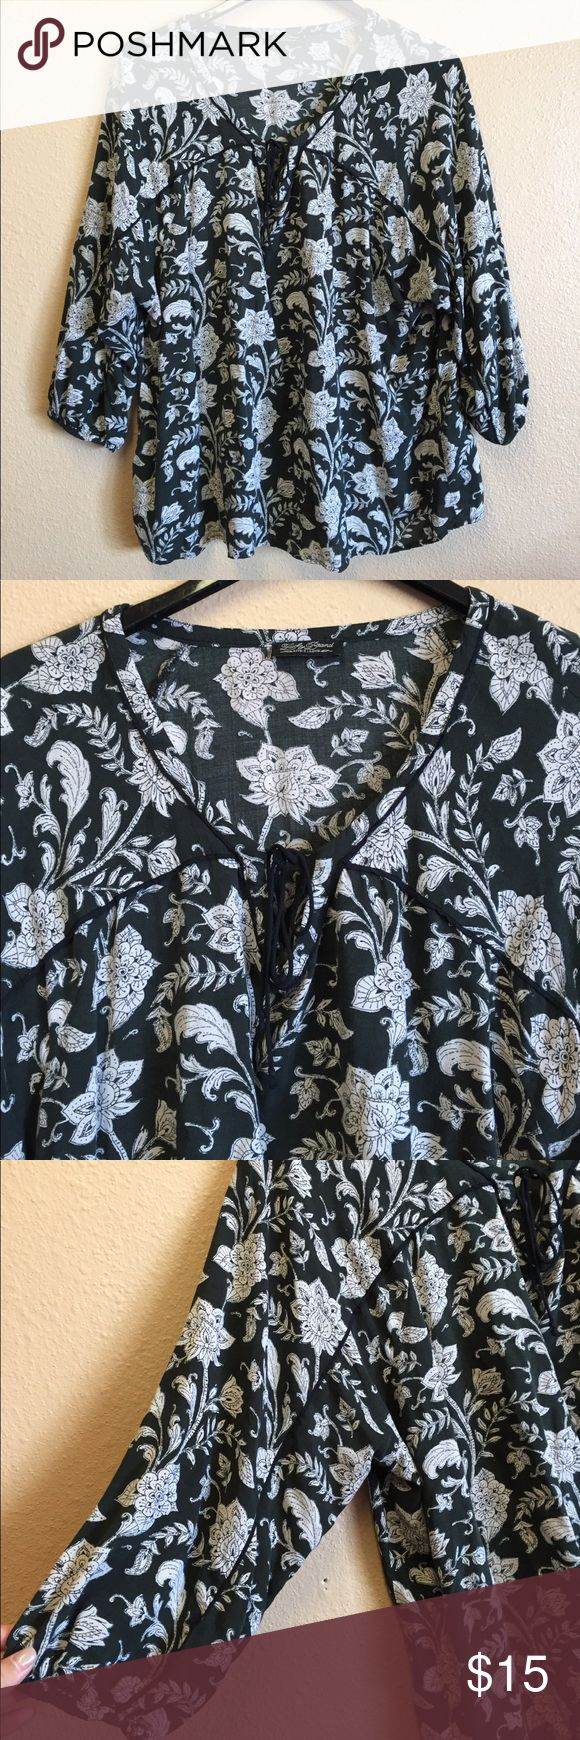 Lucky Brand Flowing Blouse Cute lucky brand flowing blouse. Tie on the chest, size medium, little wash and wear. Olive green color with white floral designs Lucky Brand Tops Blouses